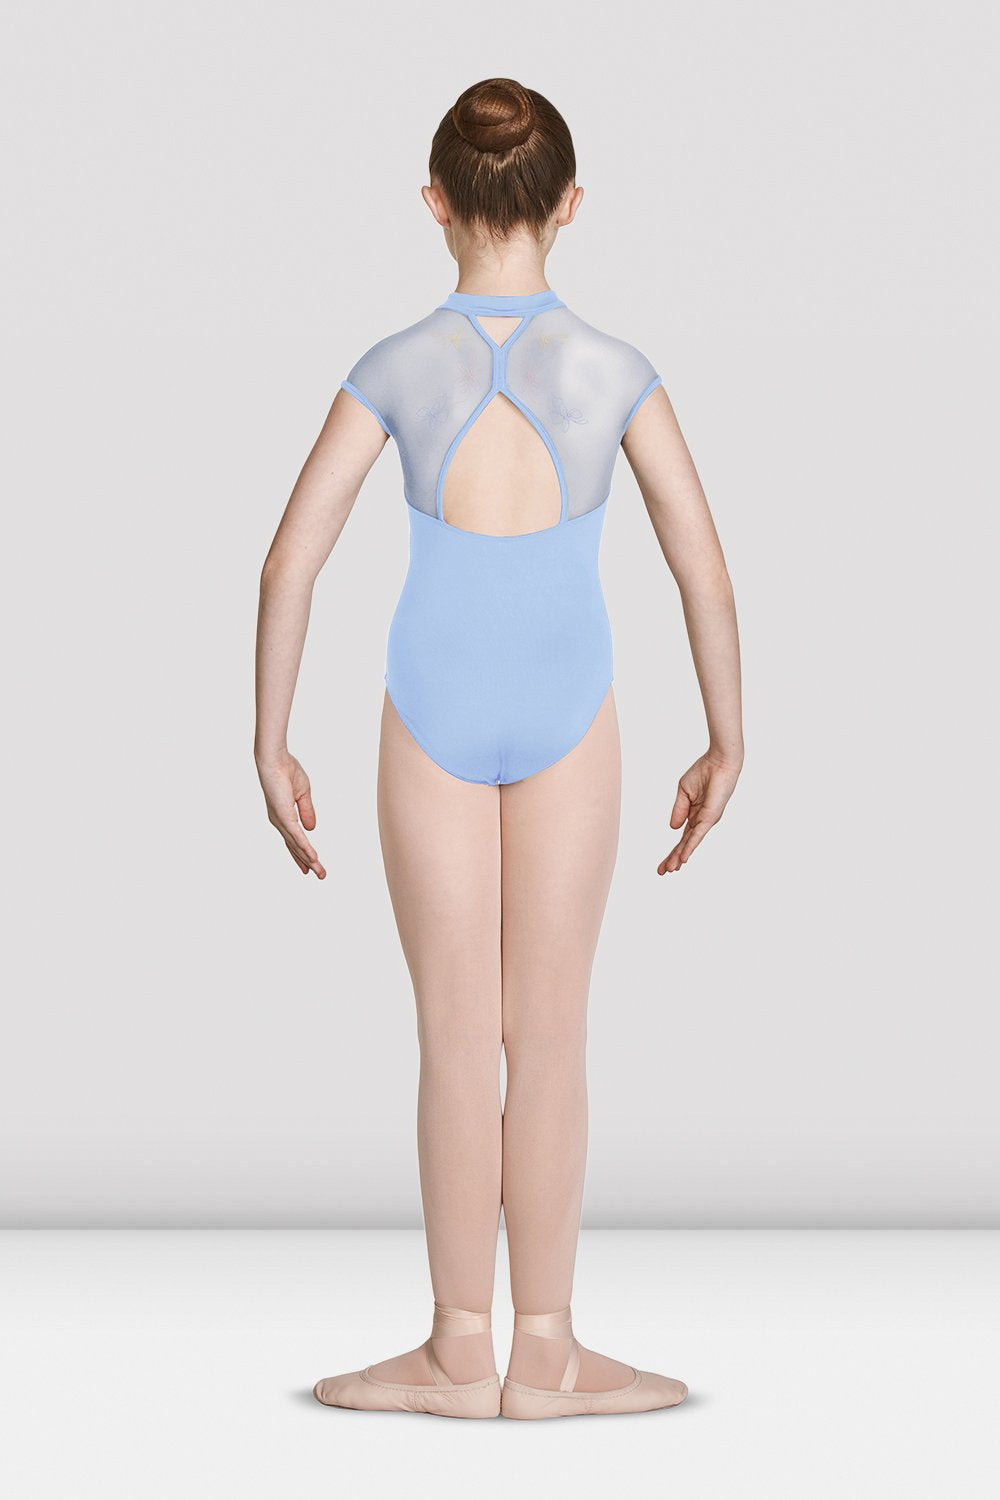 Blue Bloch Girls High Zip Neckline Open Back Cap Sleeve Leotard on female model feet in first position with arms in demi bra facing back